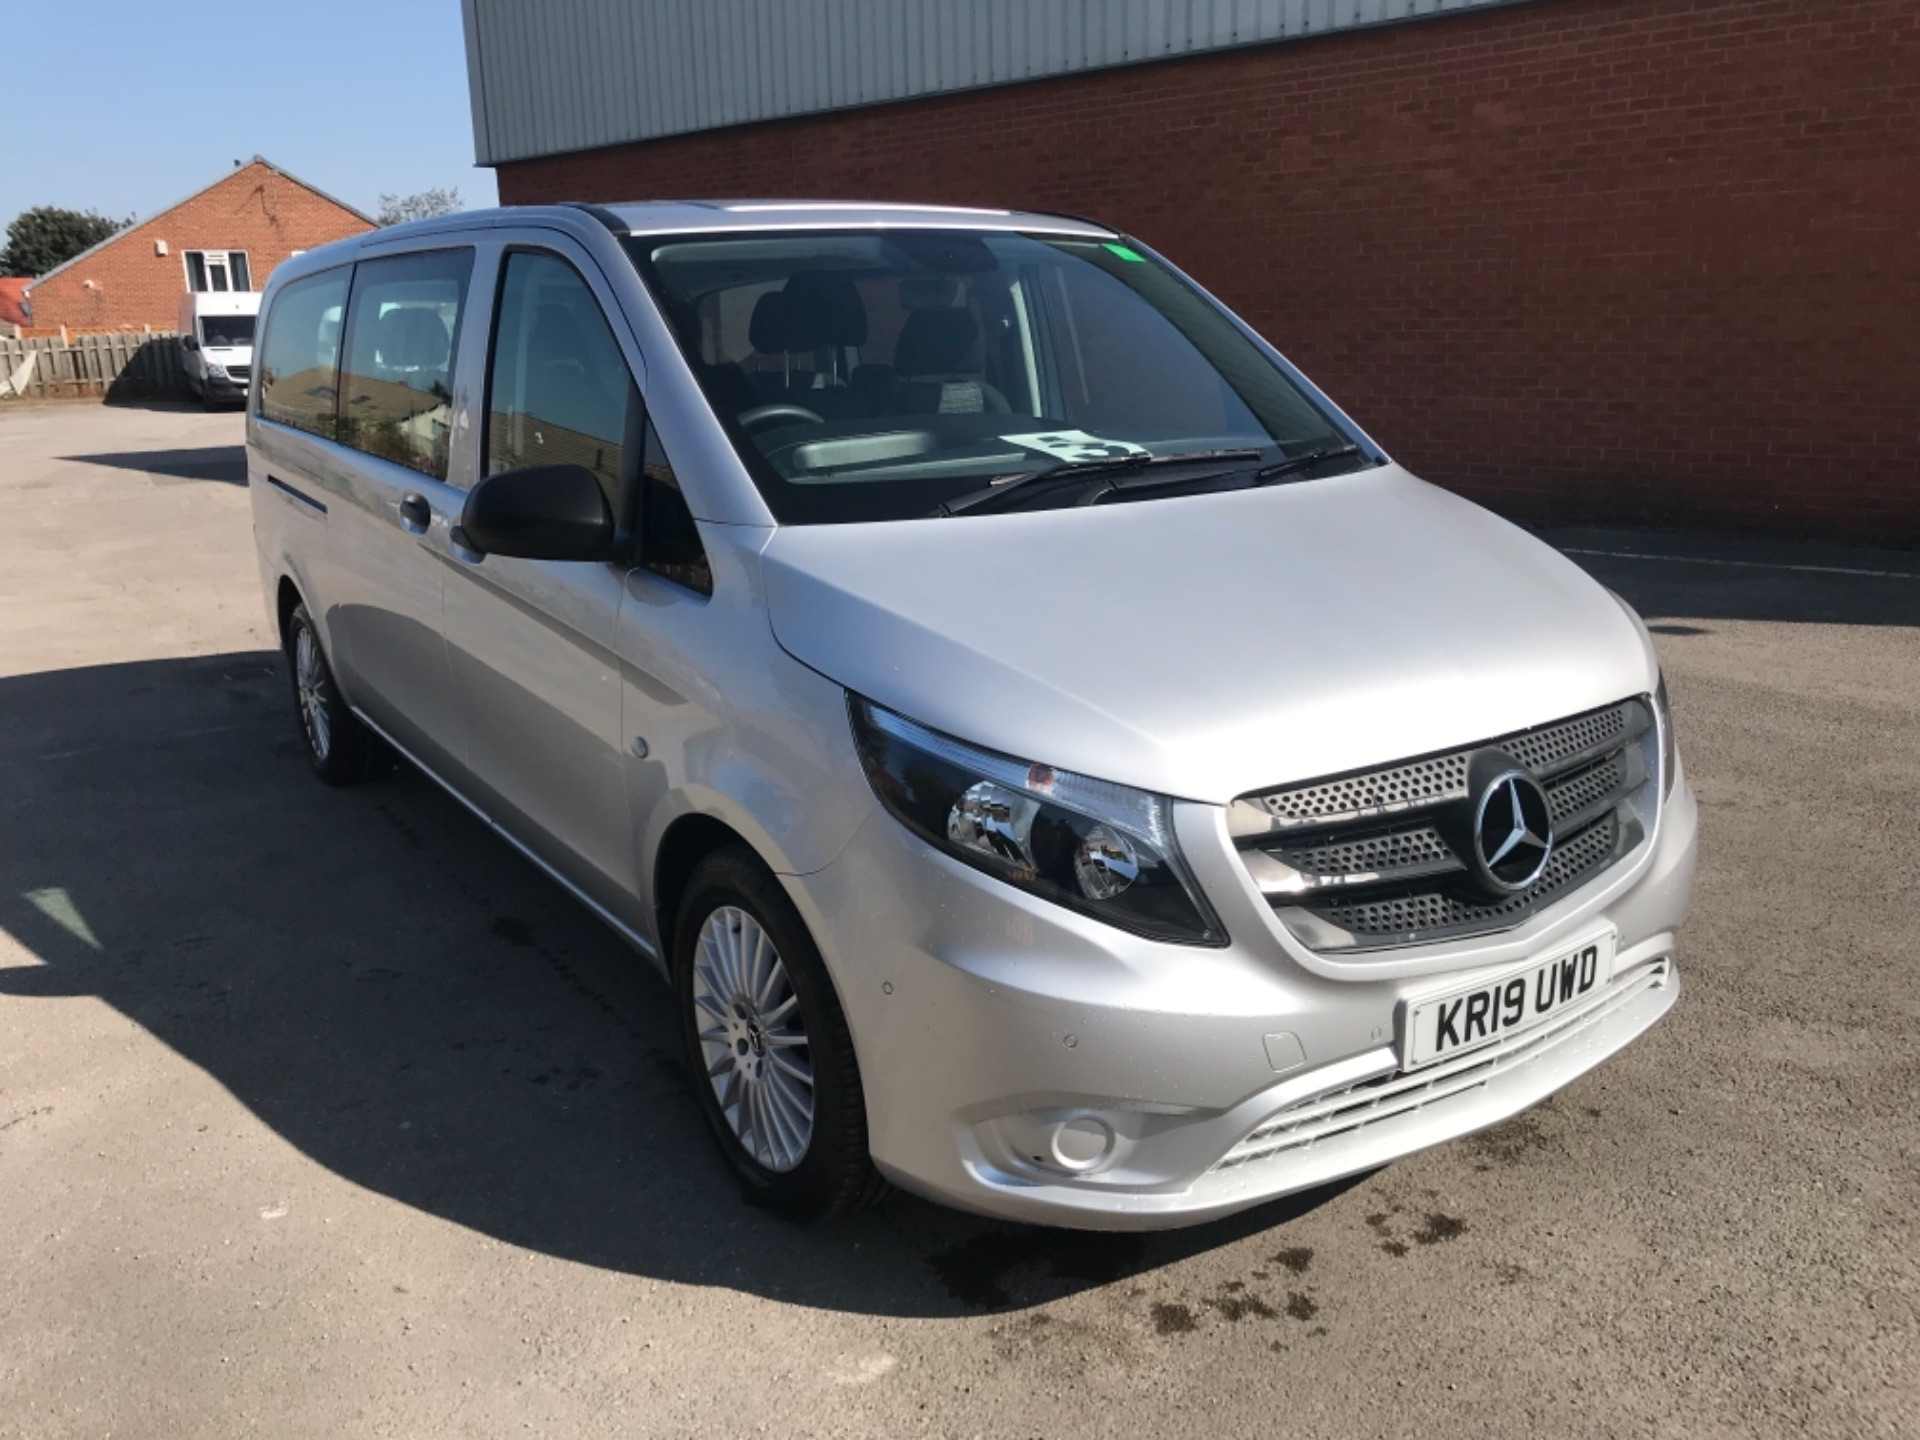 2019 Mercedes-Benz Vito 119 Cdi Select 8-Seater 7G-Tronic (KR19UWD)